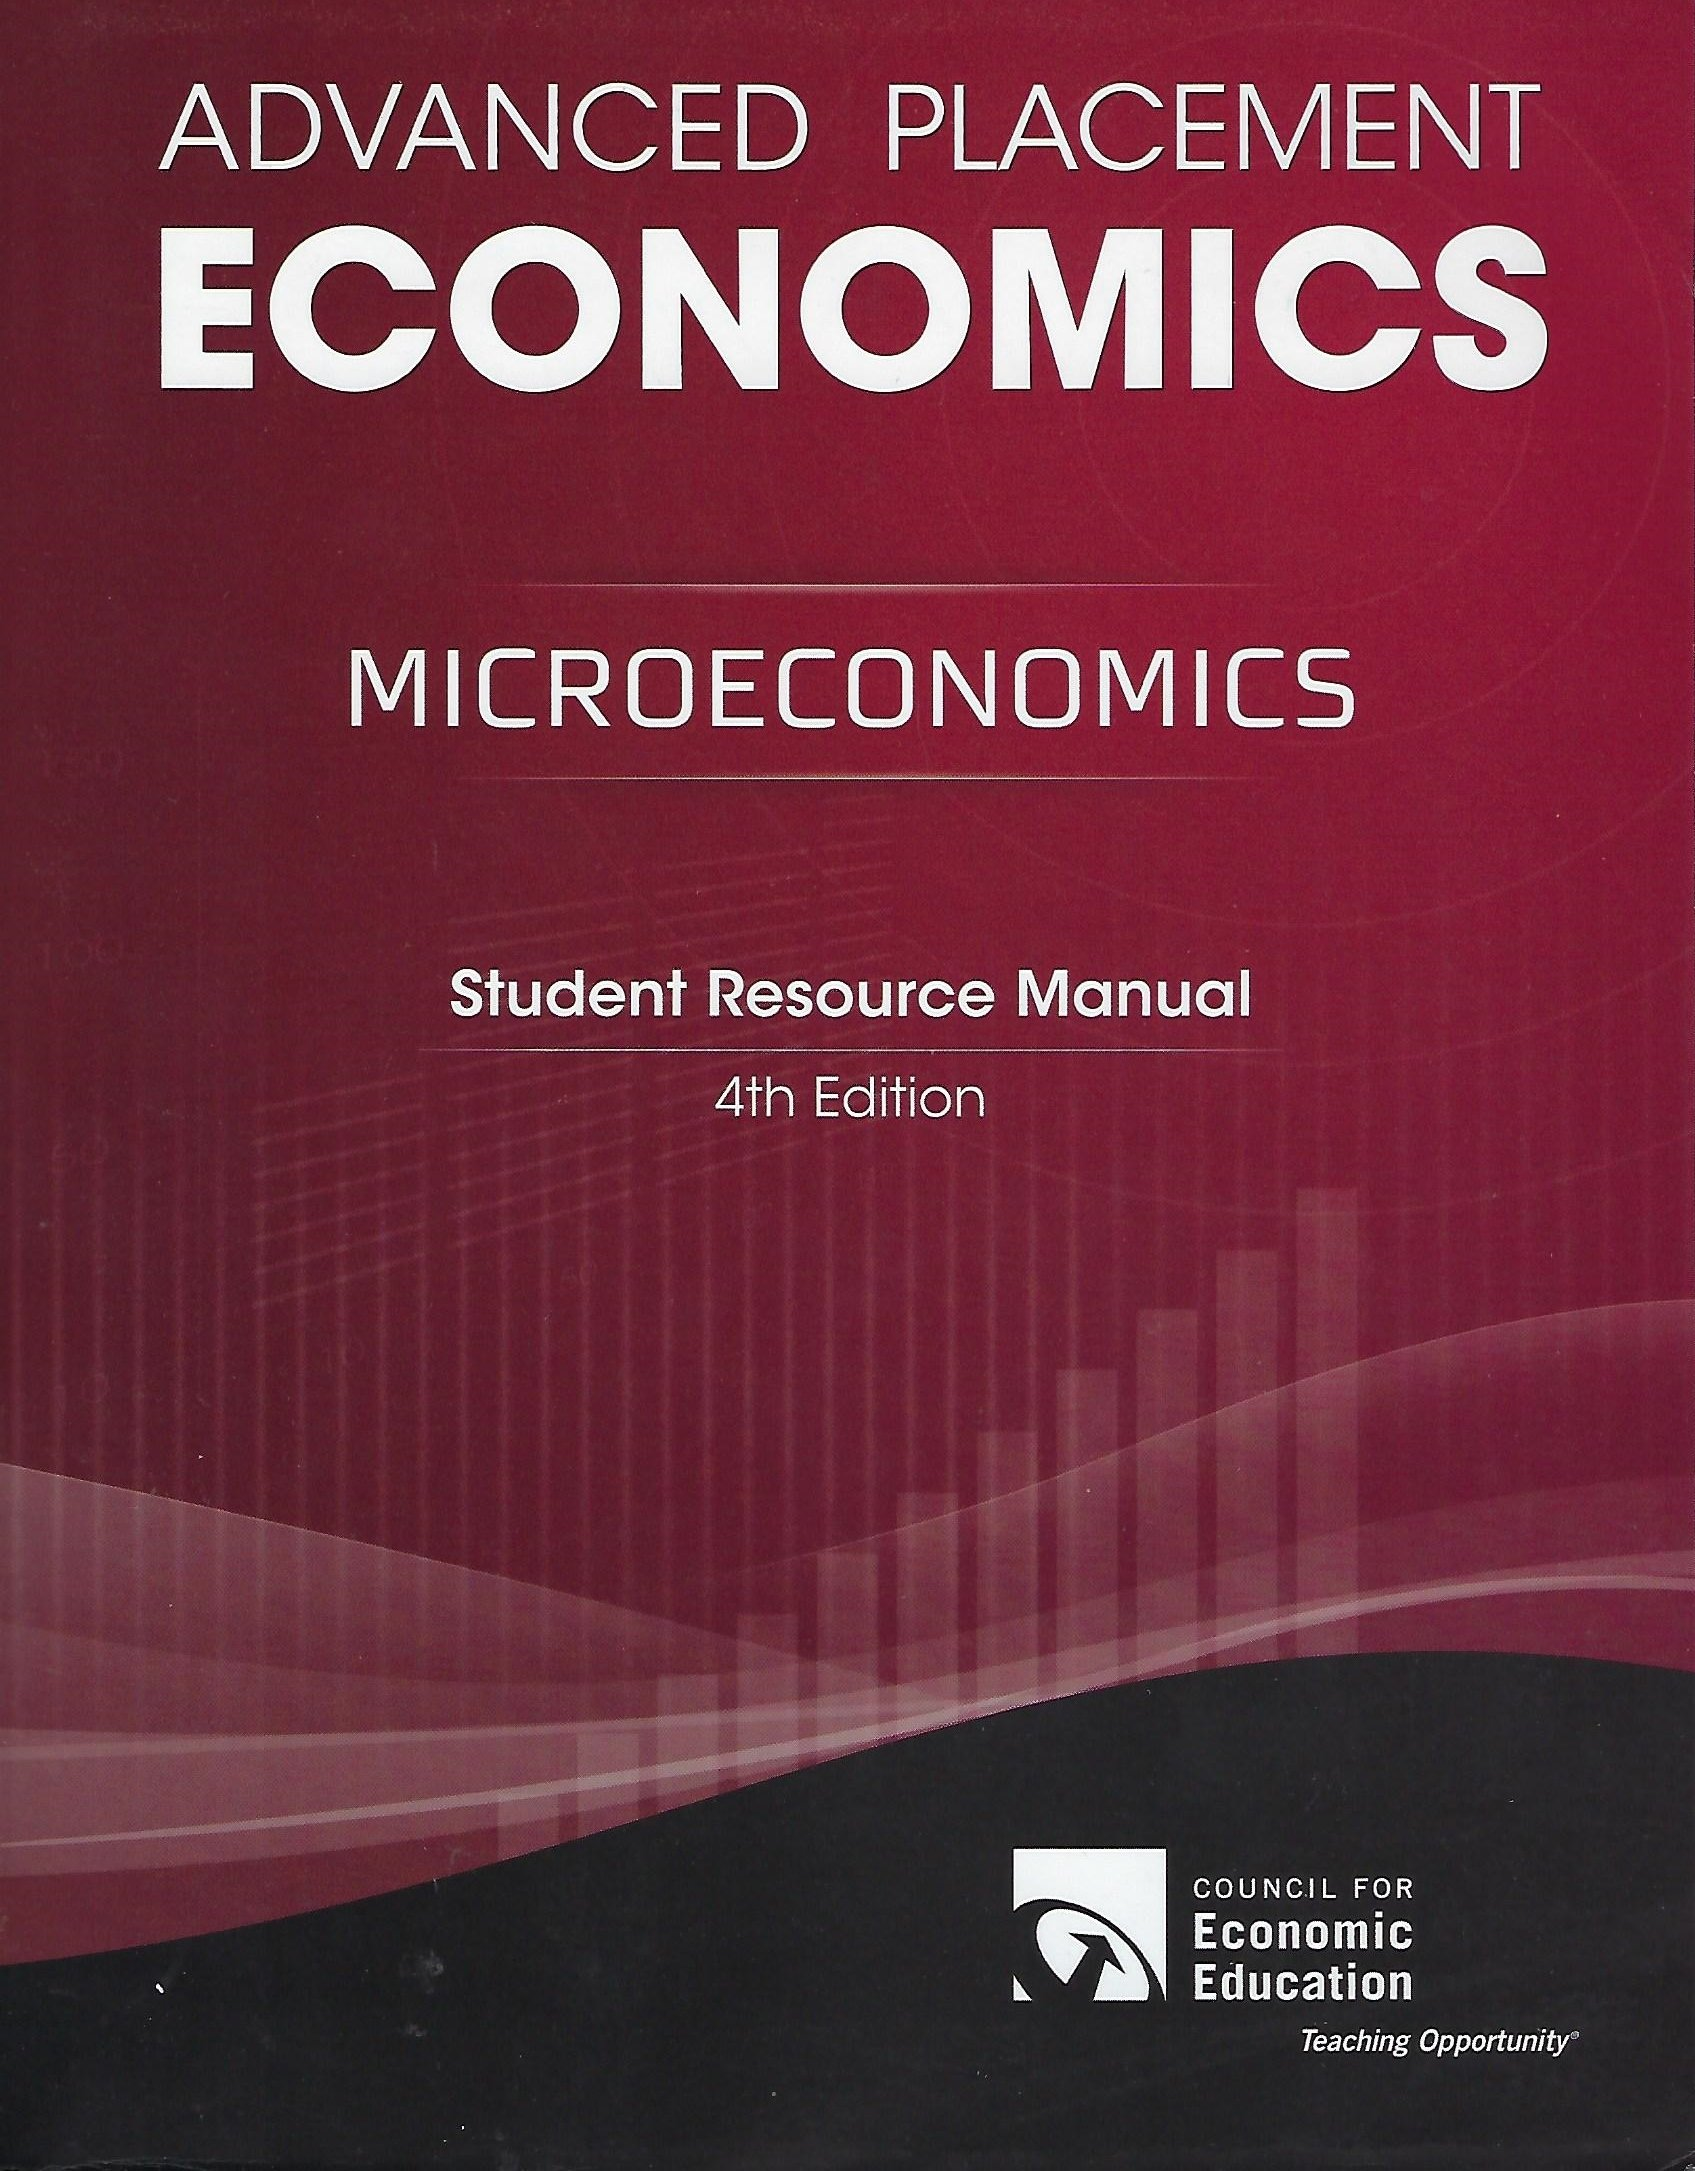 Advanced Placement: Microeconomics: Student Resource Manual: Gary L. Stone:  9781561836703: Amazon.com: Books